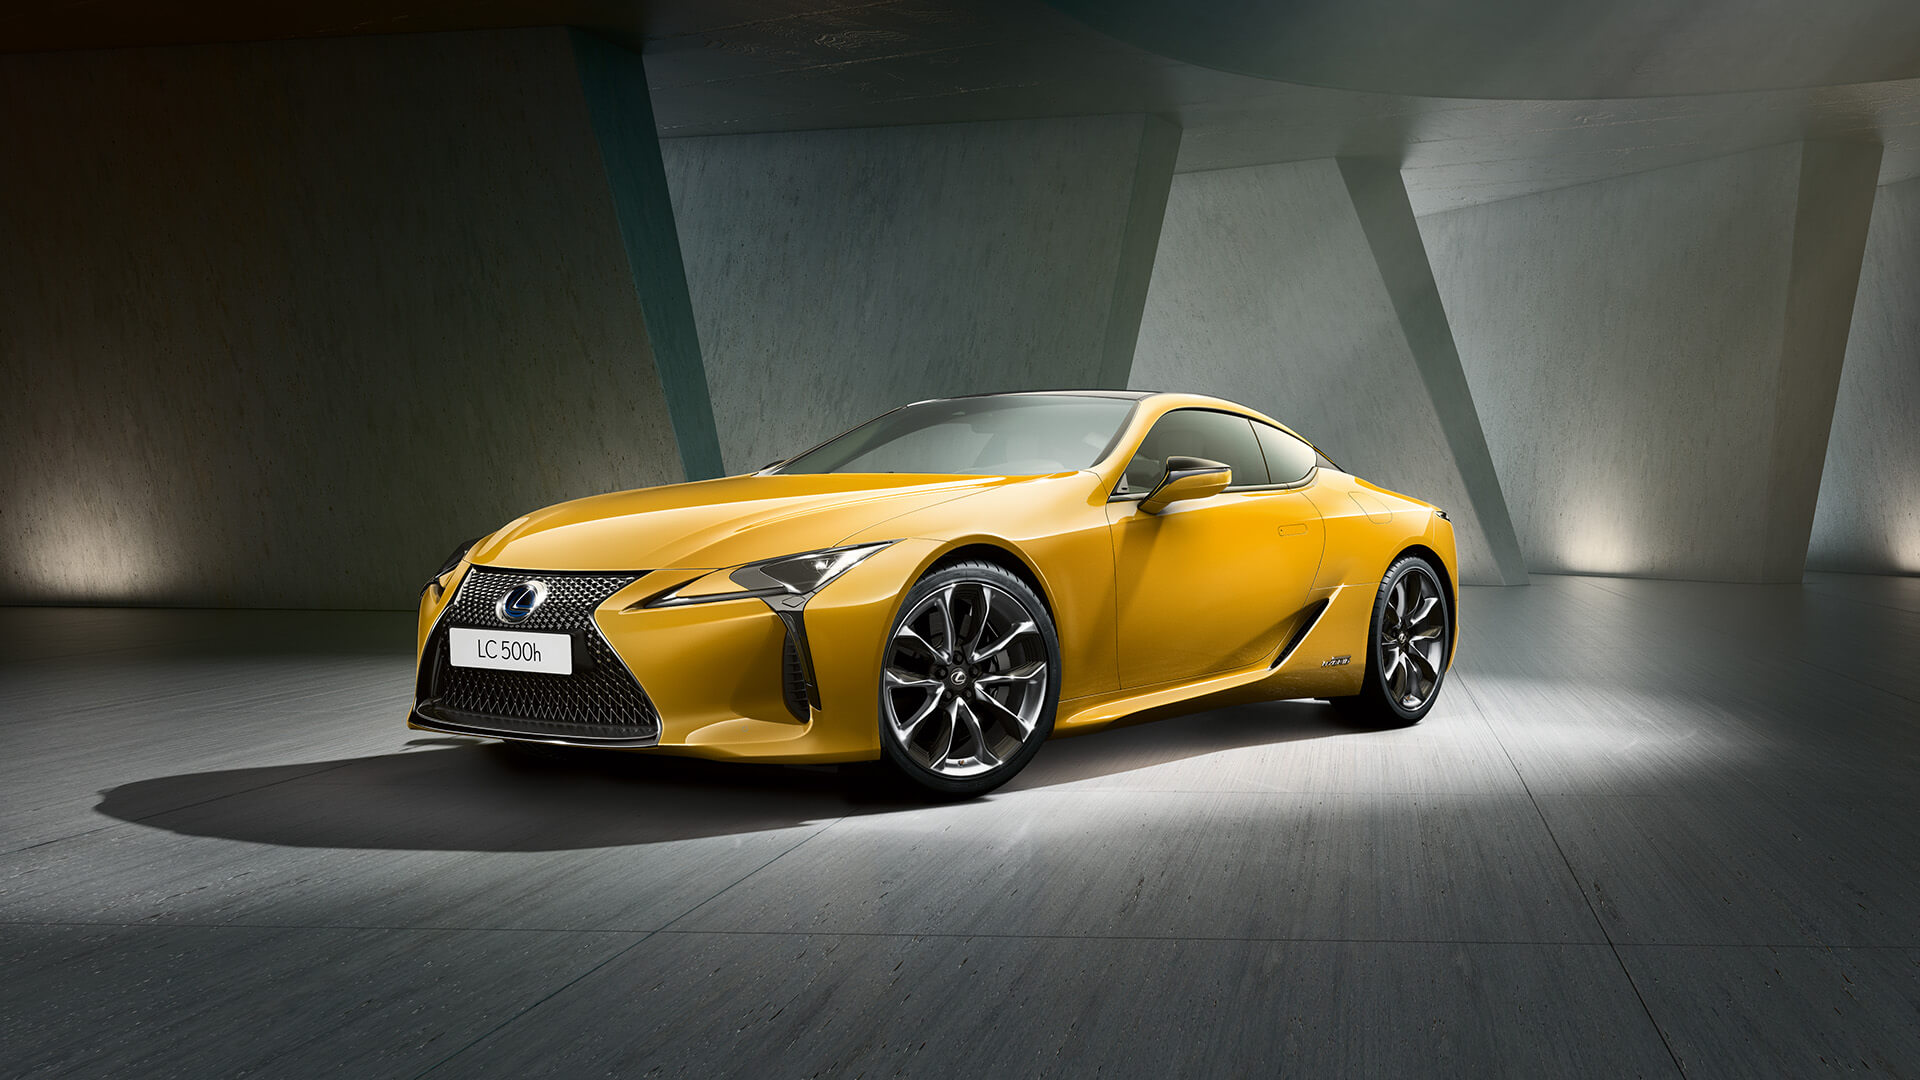 2018 lexus lc yellow hero 1920x1080 v2 new